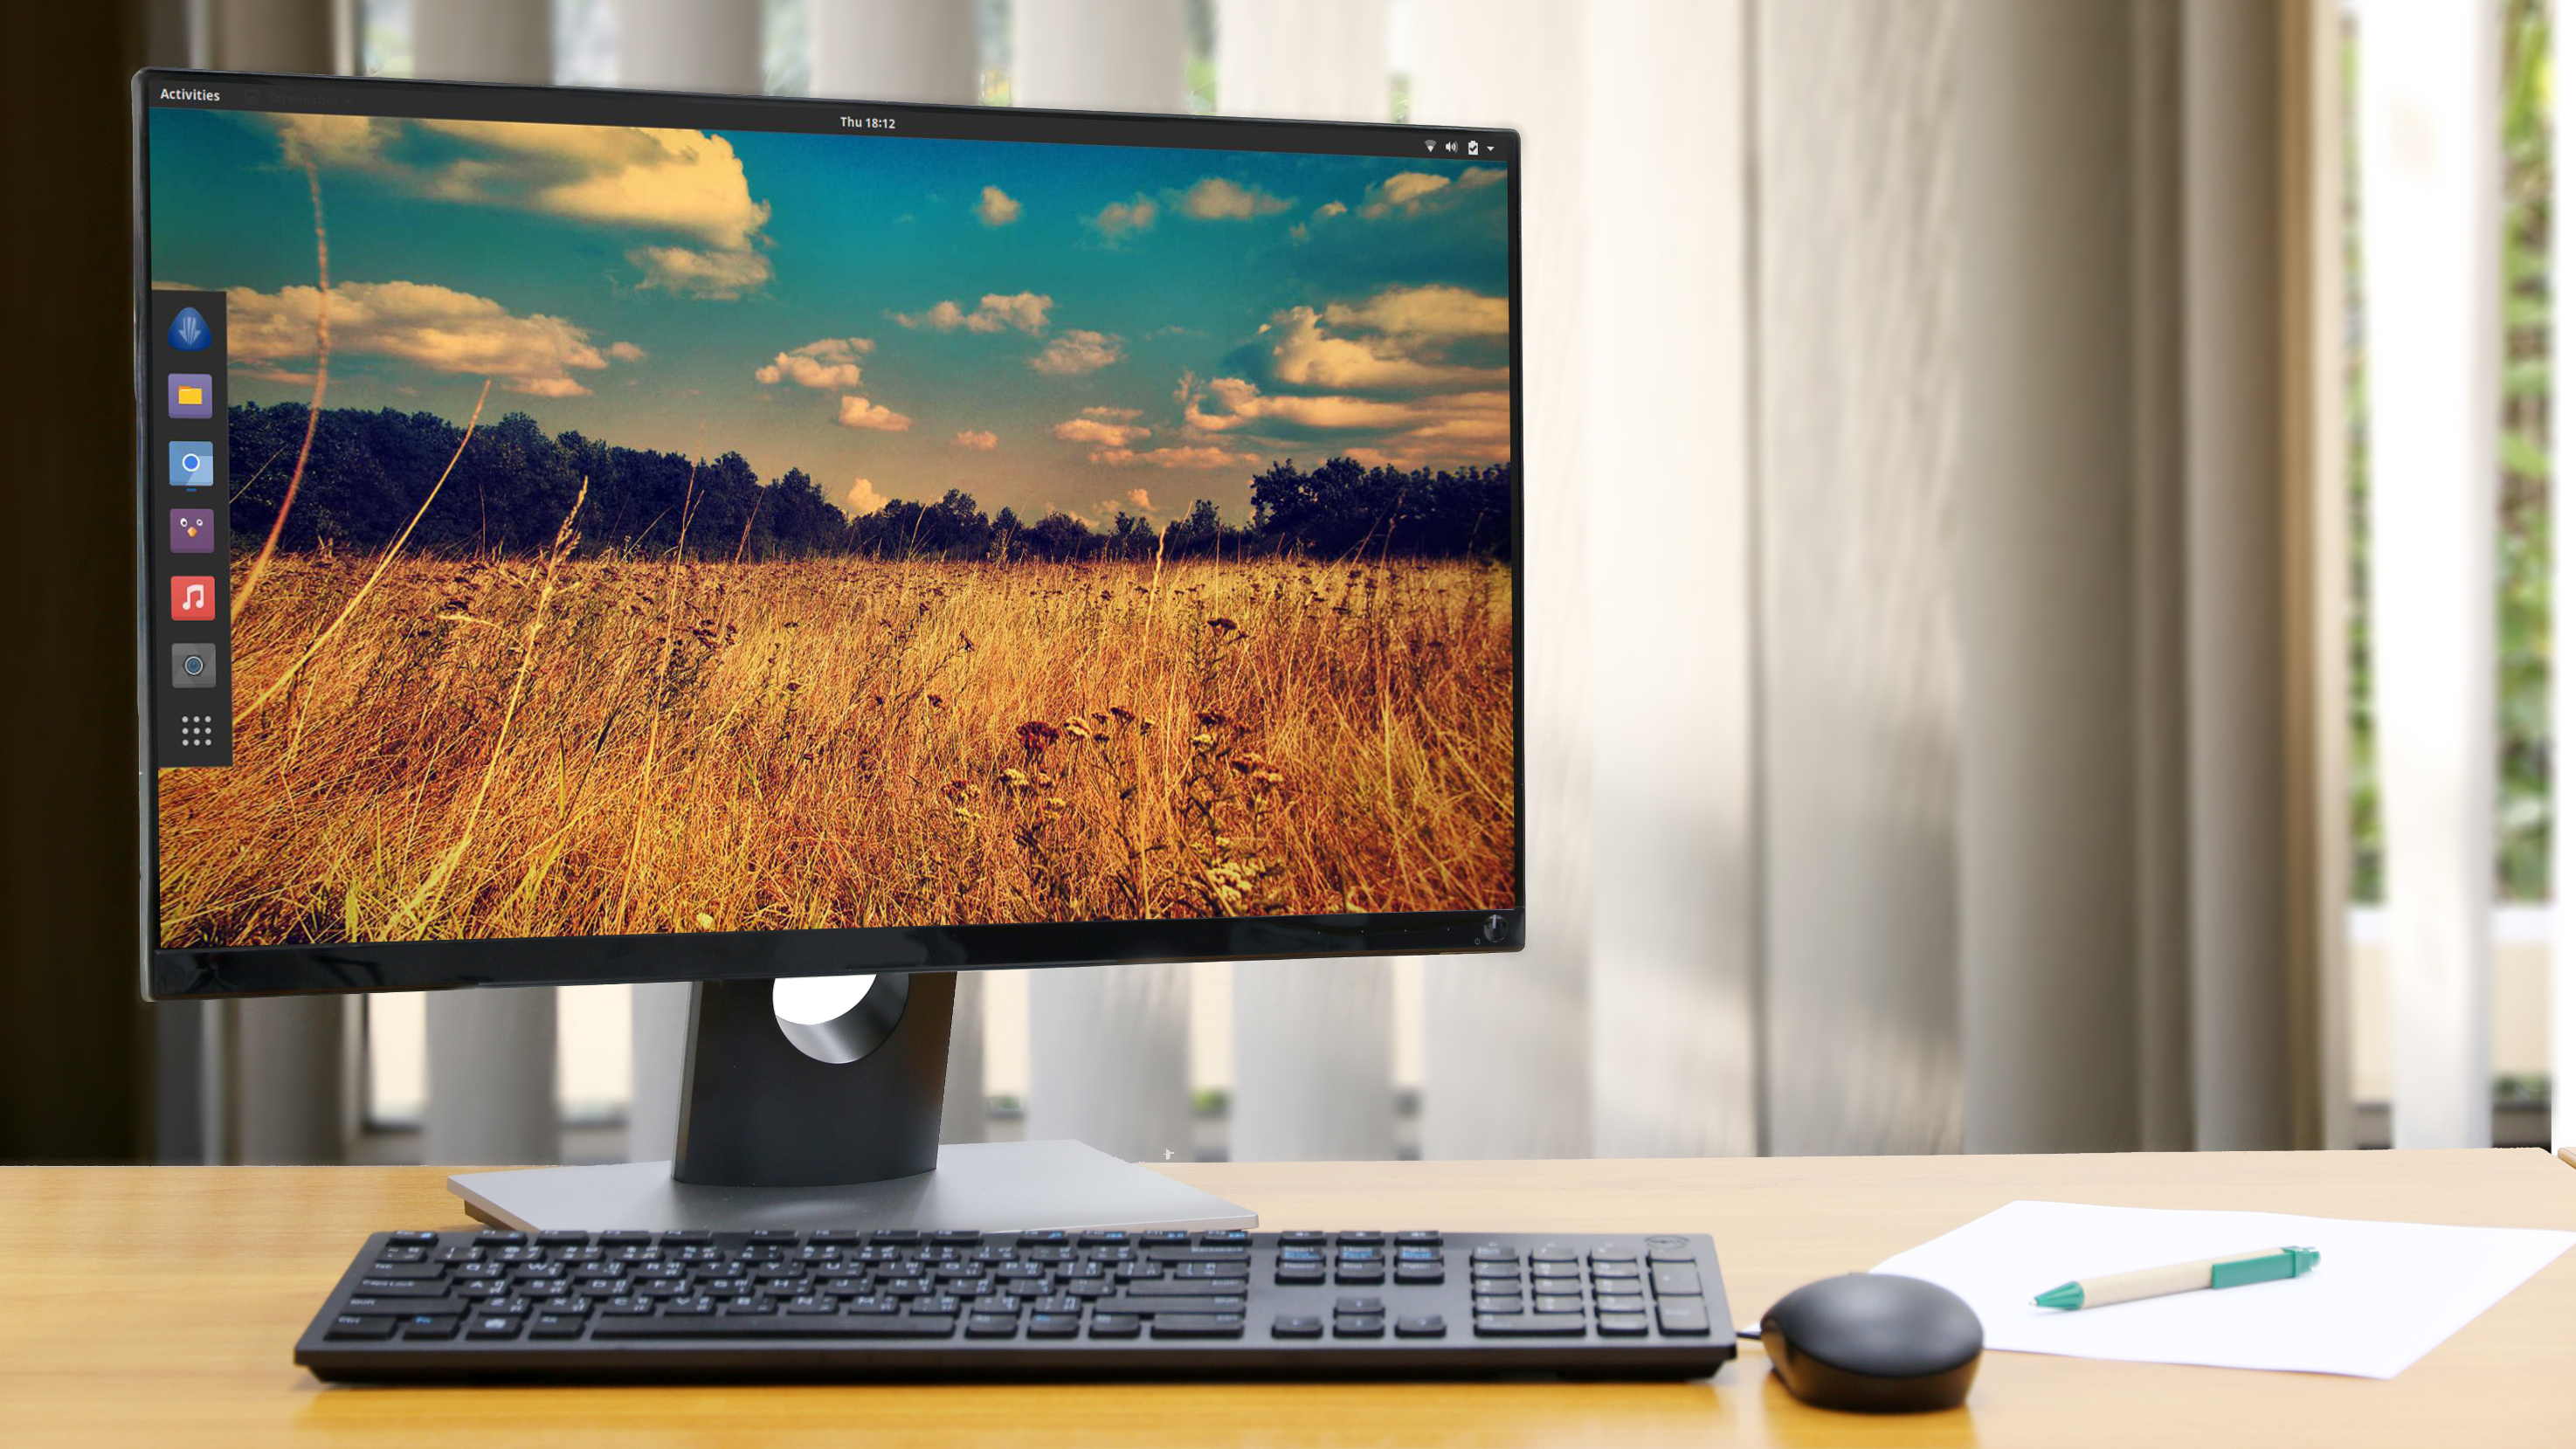 Windows 10 gets Arch Linux, one of the trickiest distros around